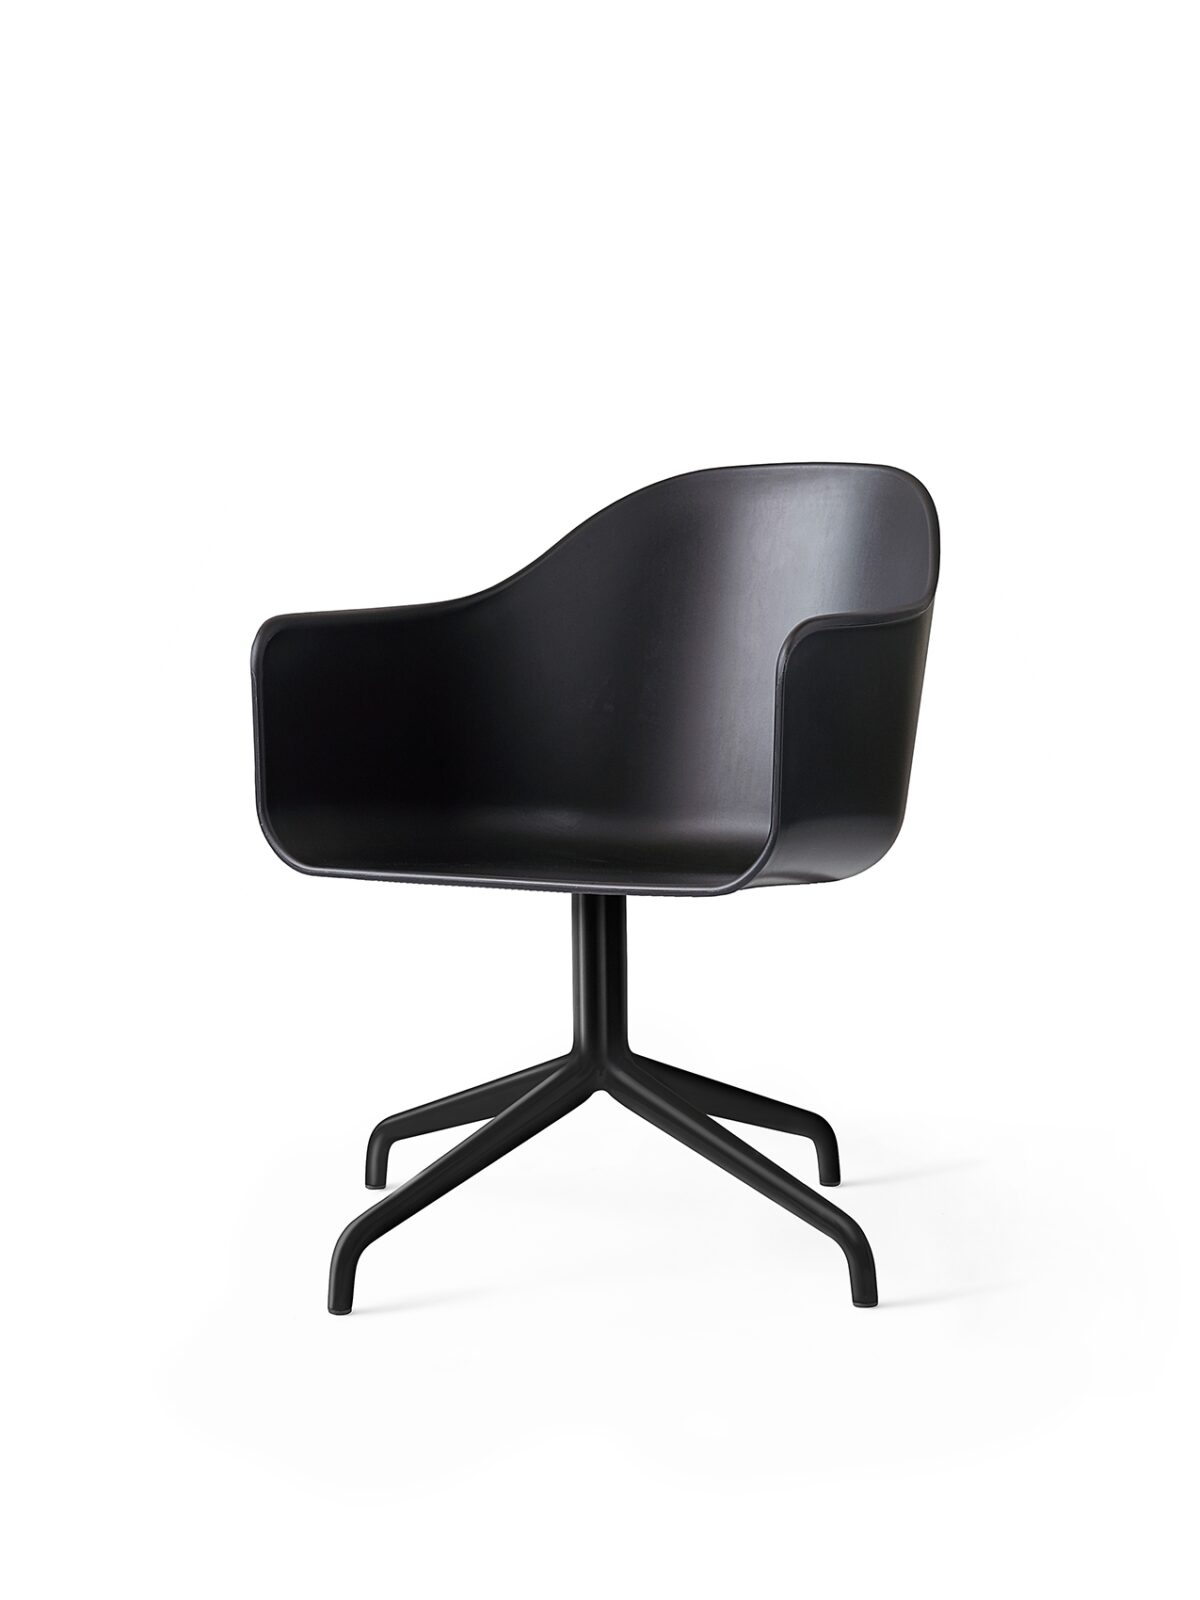 9375539 Harbour Chair Swivel Black Black Angle